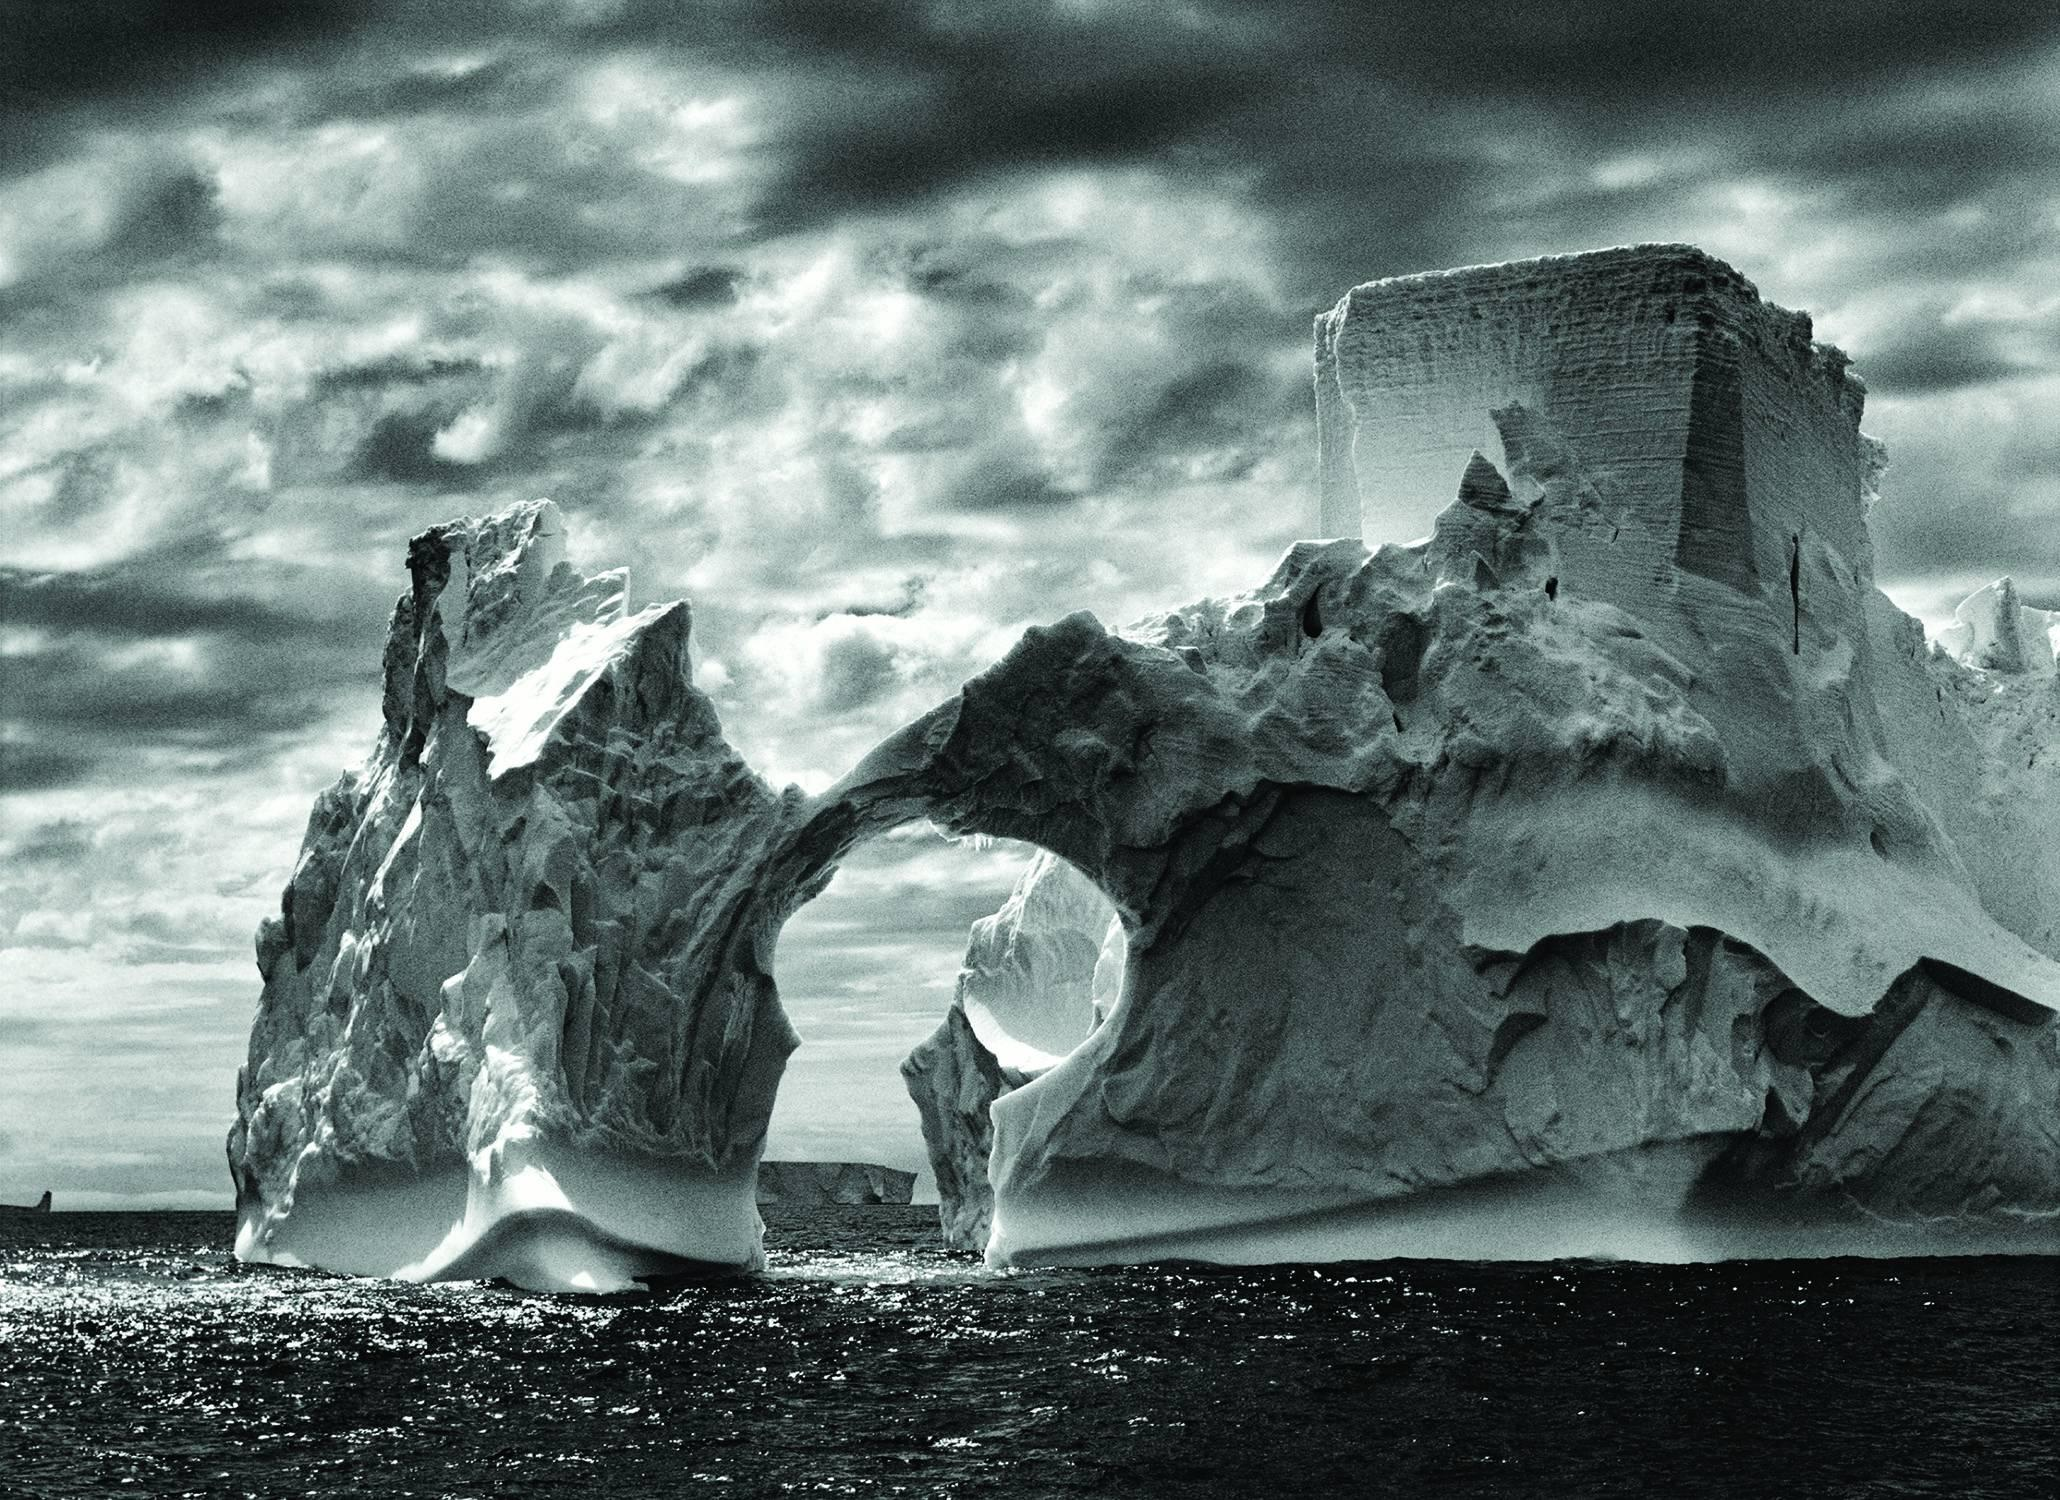 Iceberg between Paulet Island and the South Shetland Islands in the Weddell Sea